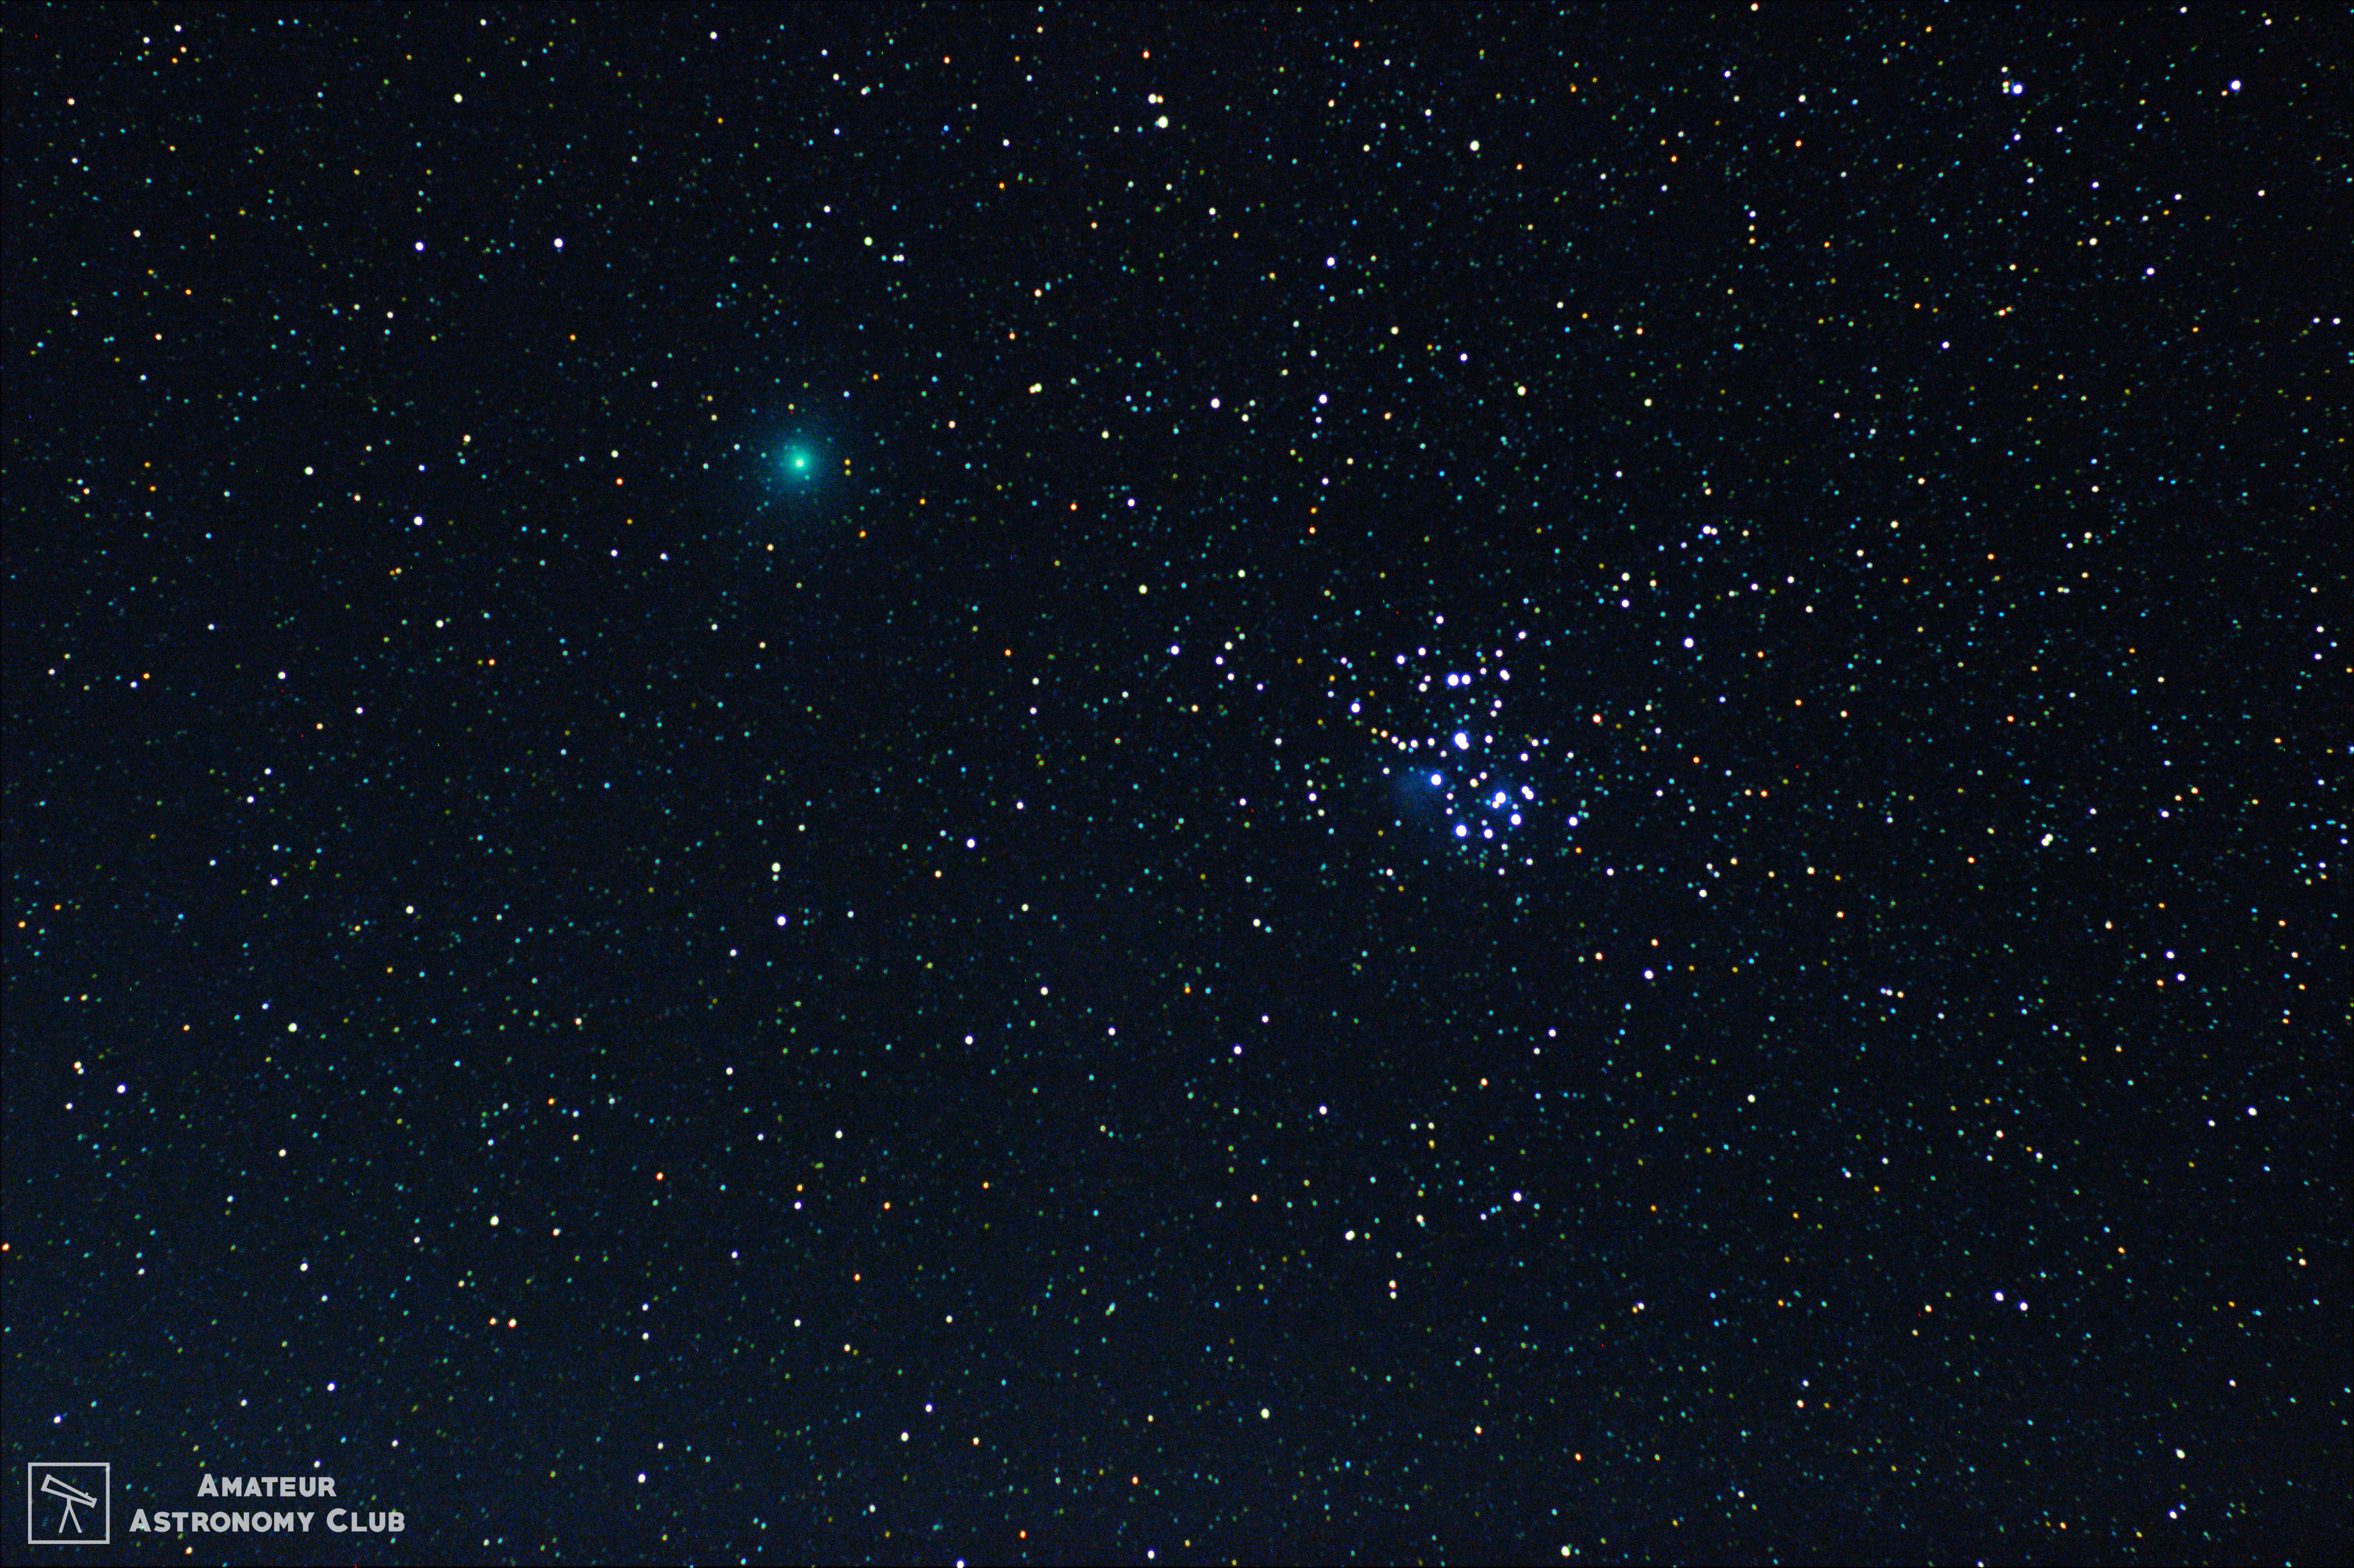 Comet Wirtanen/46p captured by Team AAC at Naneghat.